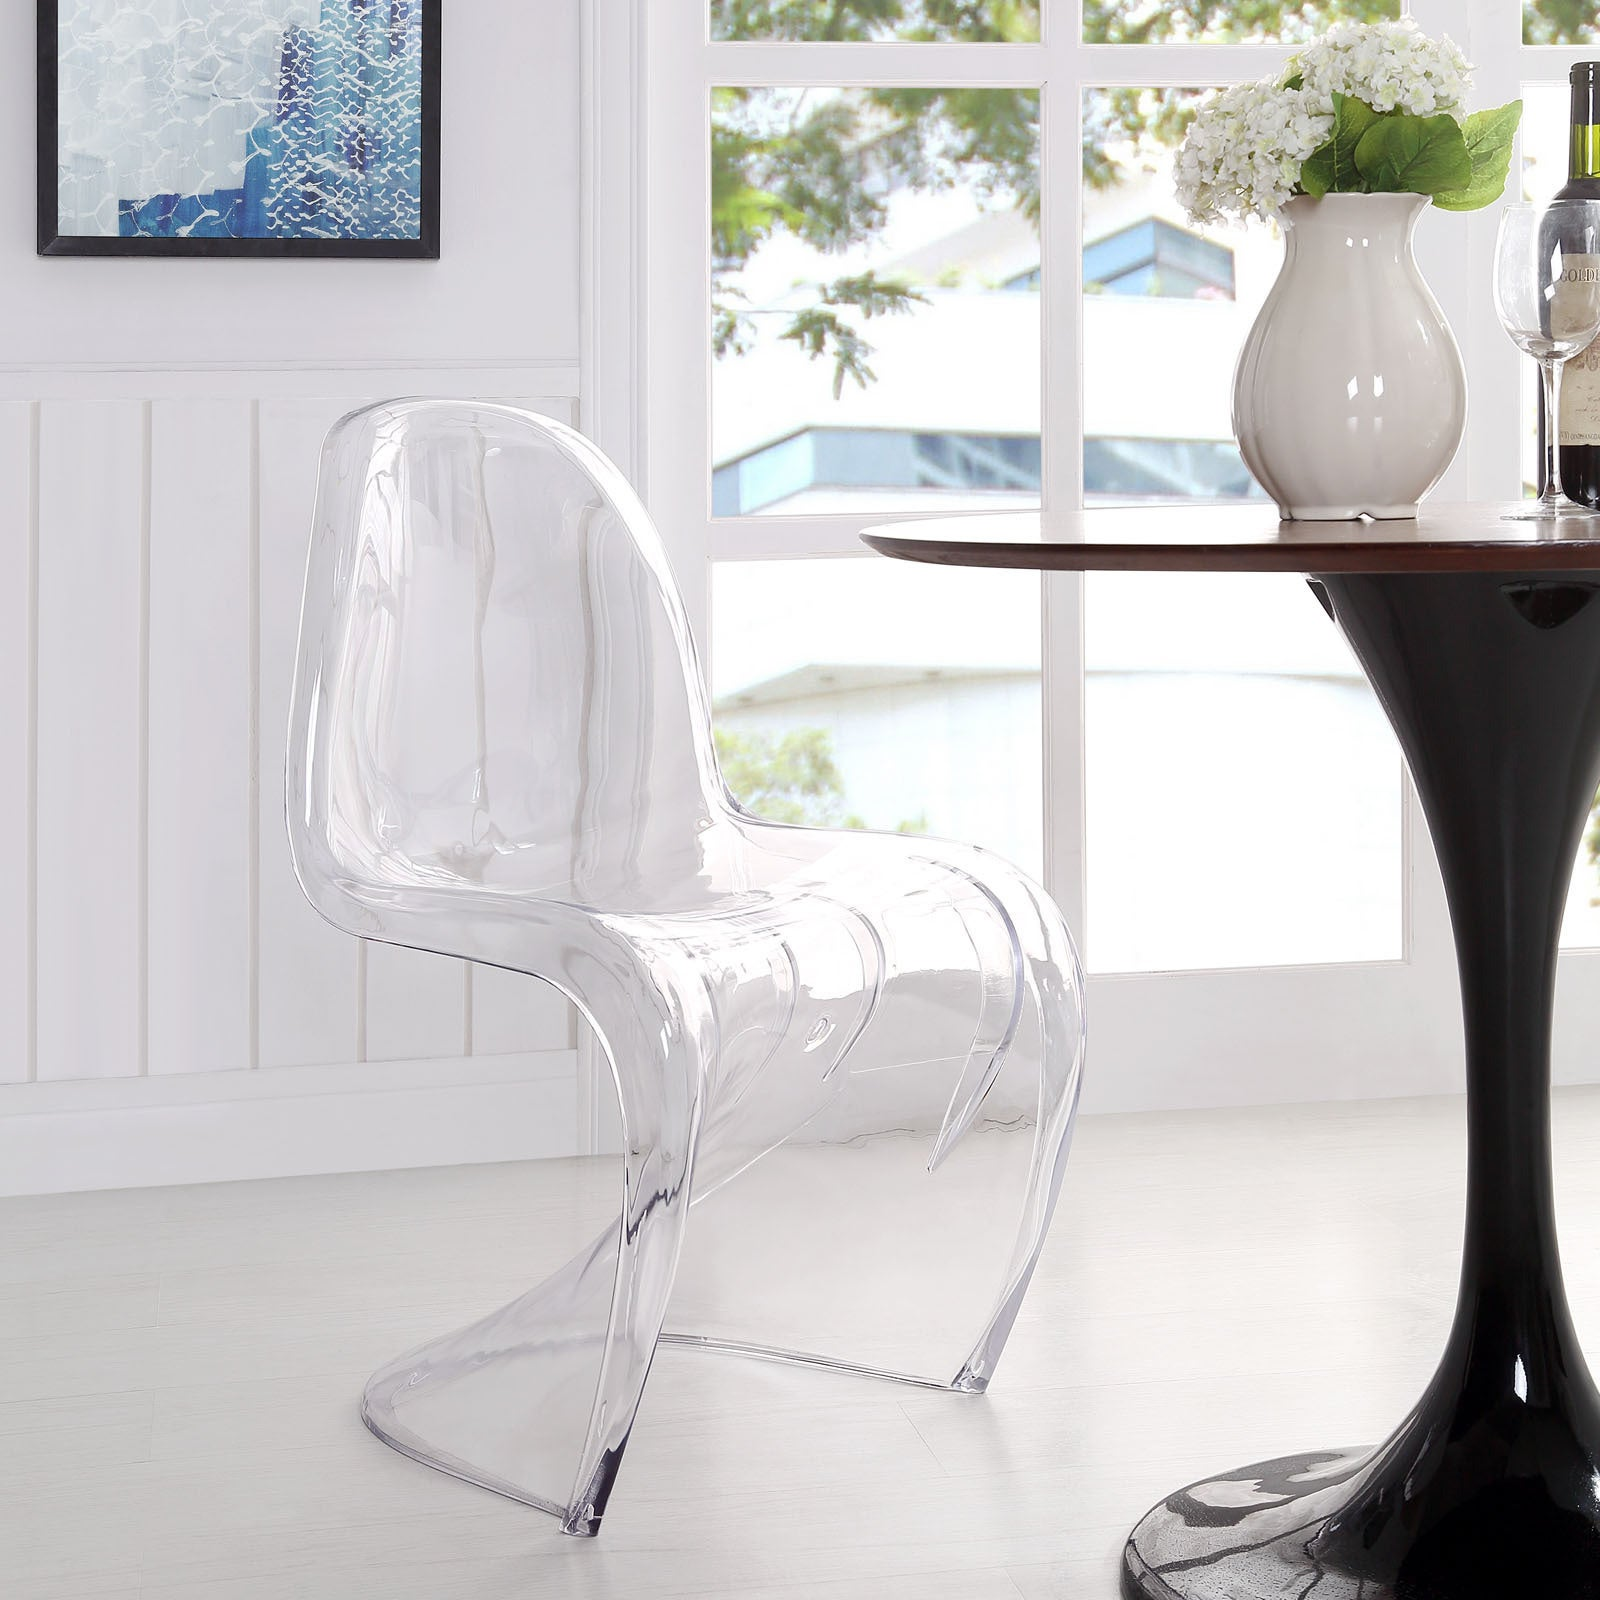 banner-slither-s-shape-acrylic-lucite-dining-chair.jpg